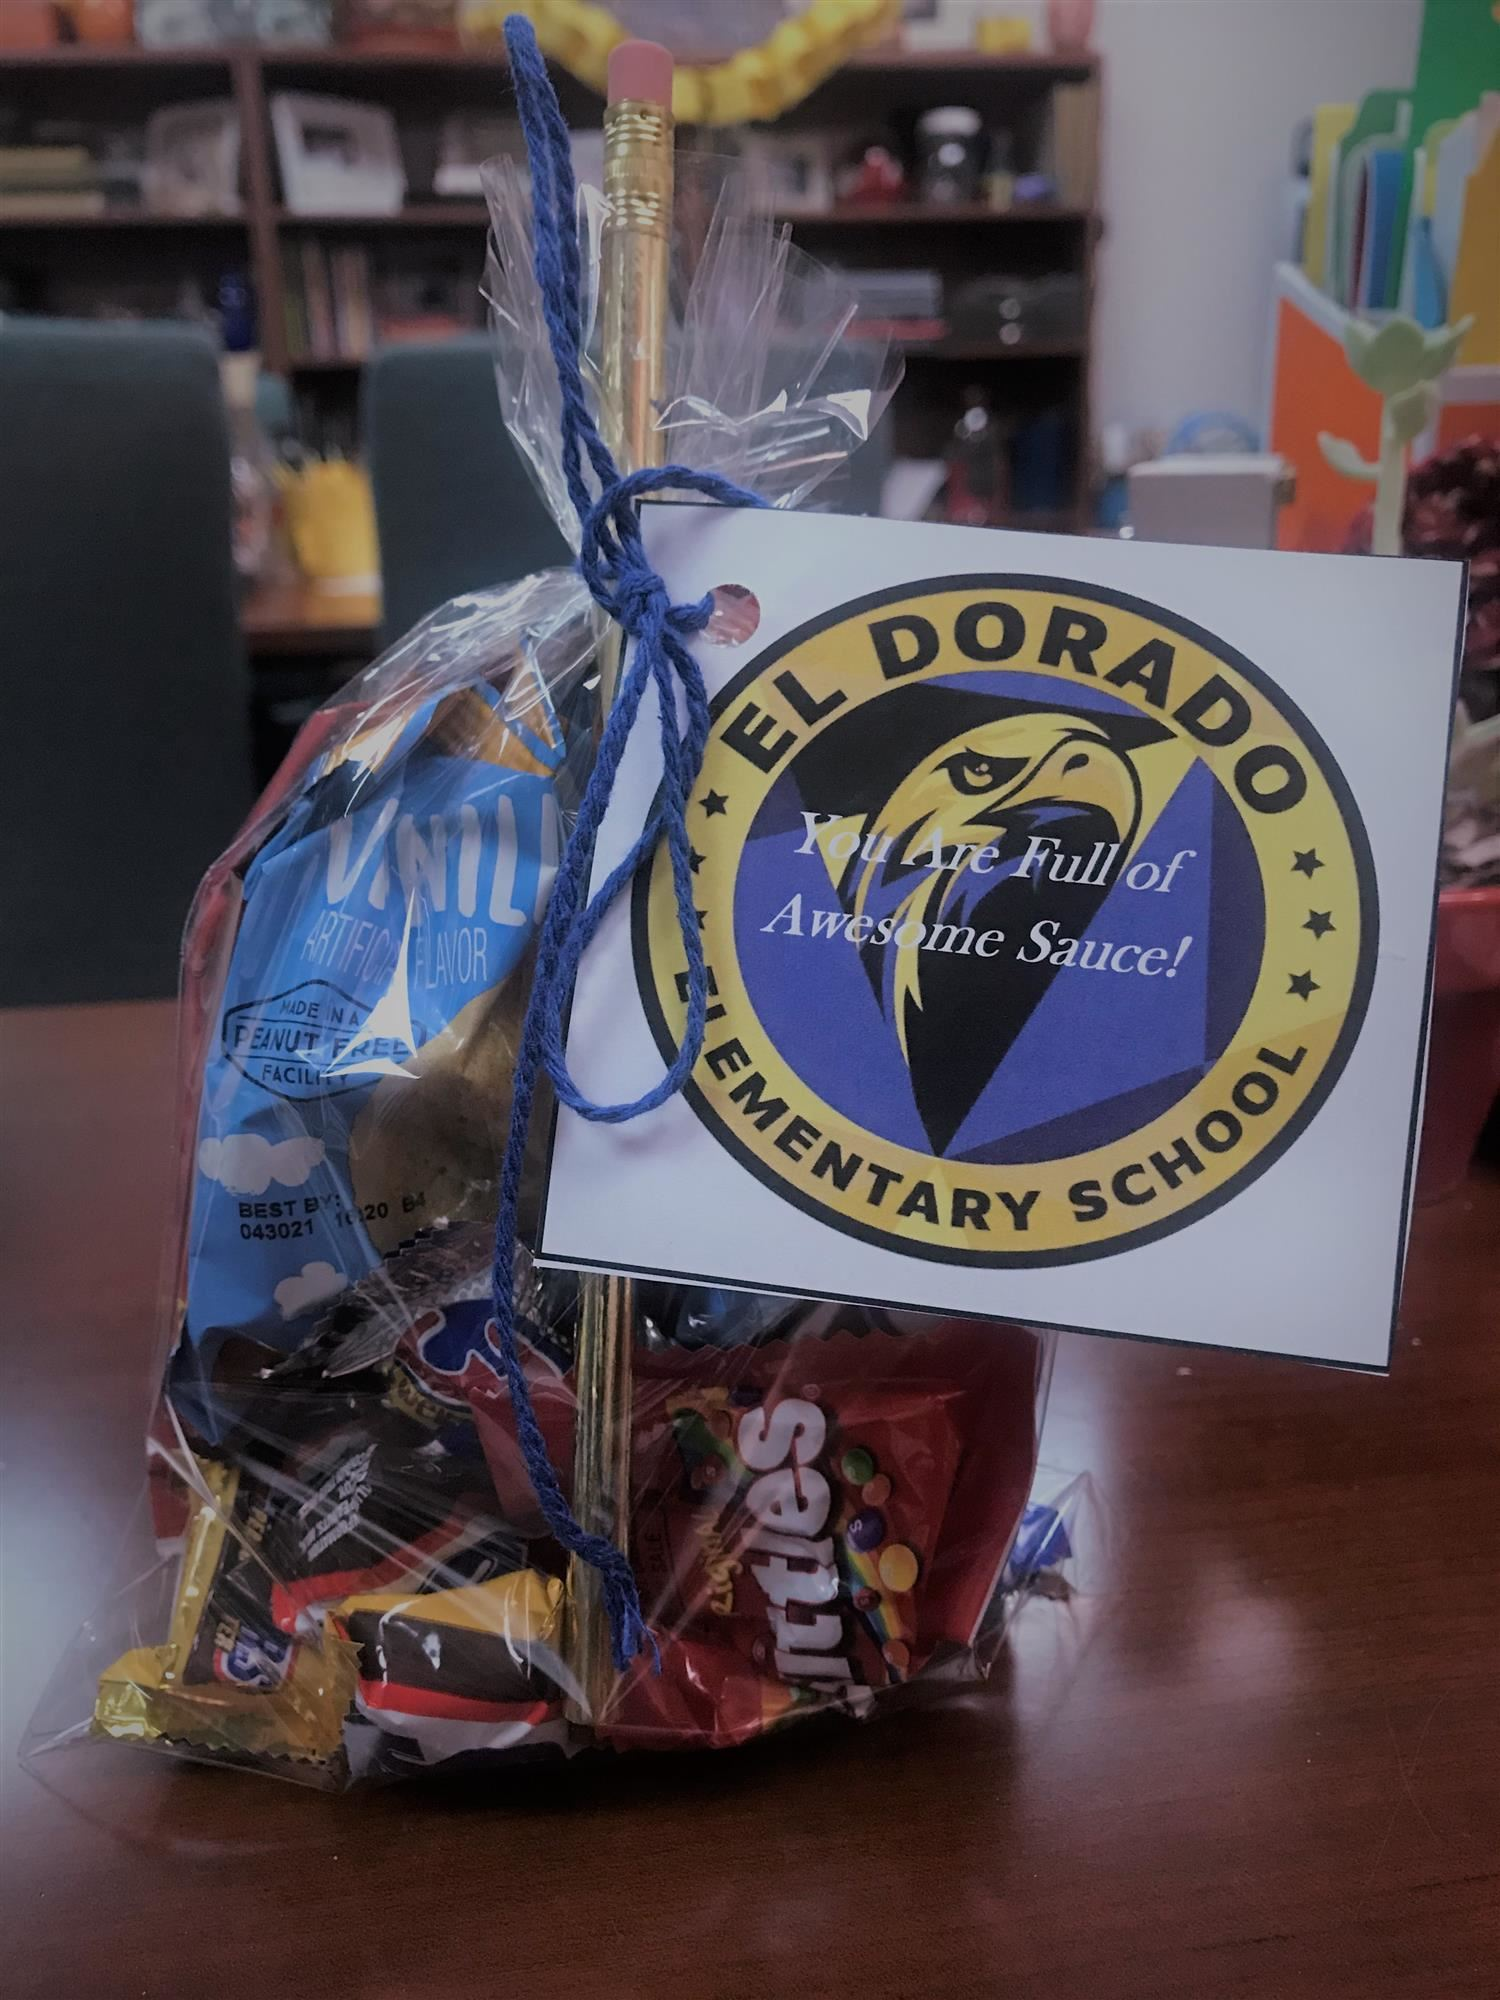 El Dorado Launches iReady Participation Contest!